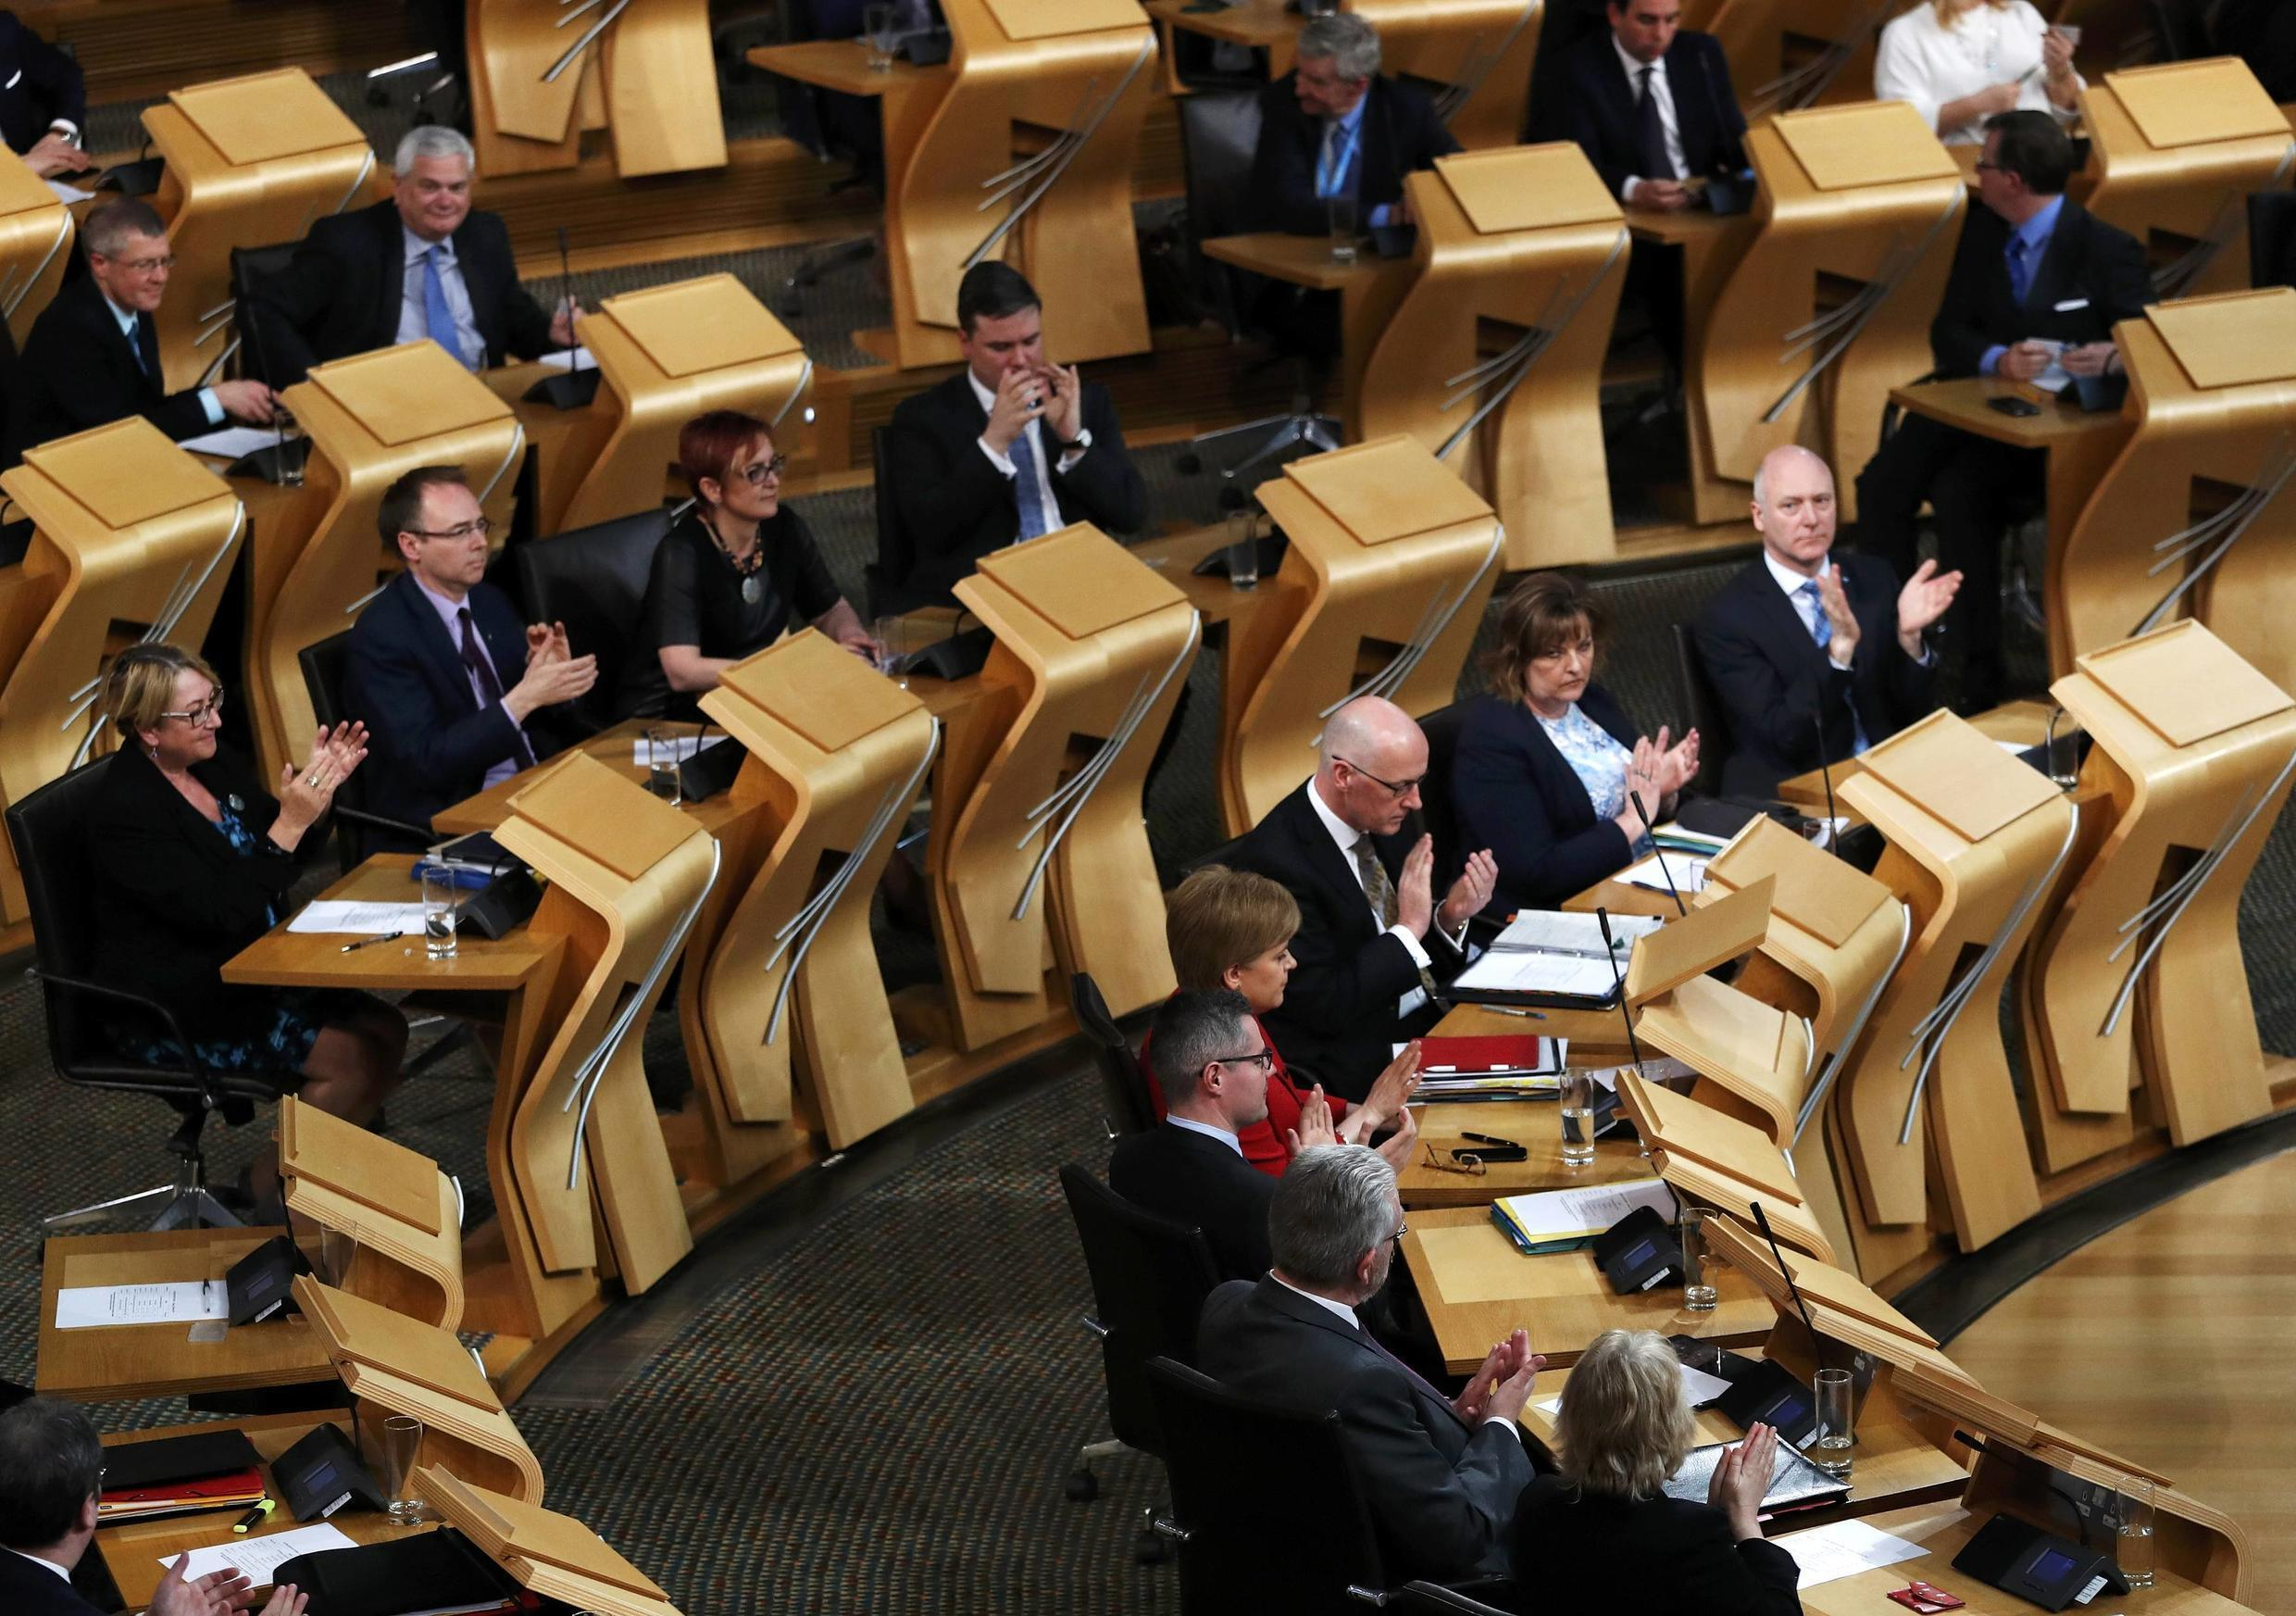 Will we see more women, more Coloured, more disabled people on the Holyrood benches after the 6 May election?